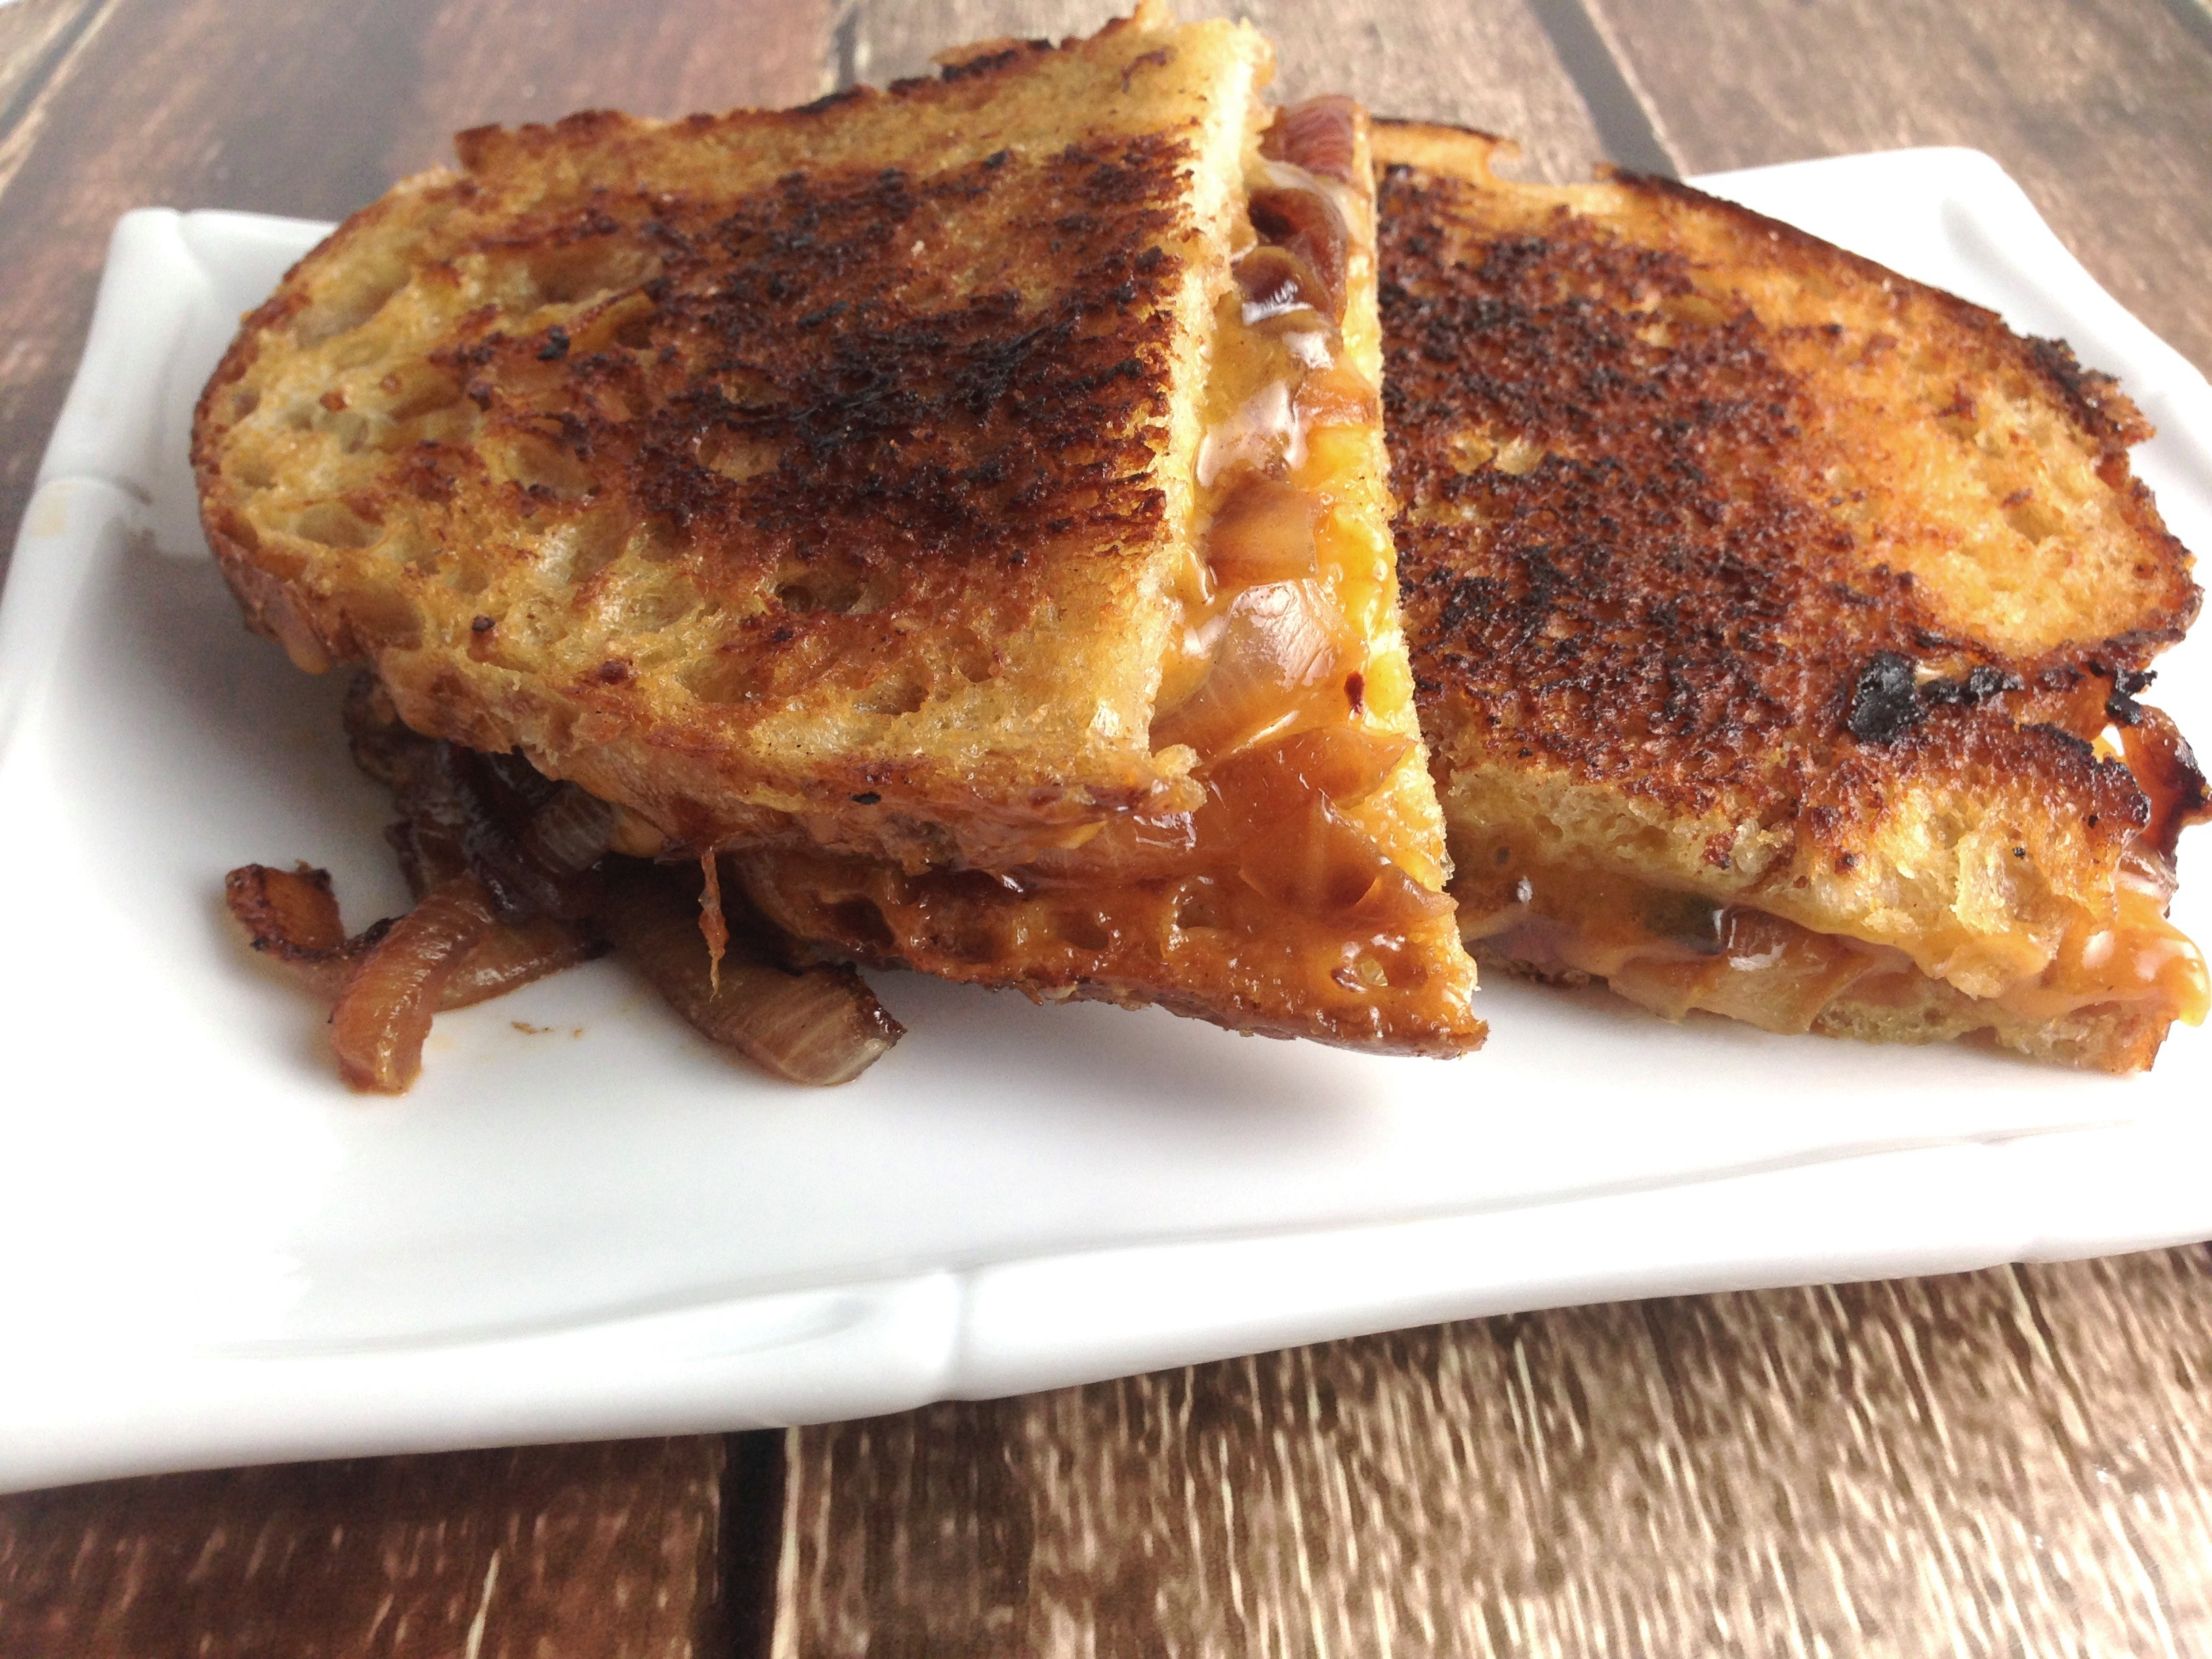 BBQ Carmelized Onion Grilled Cheeses